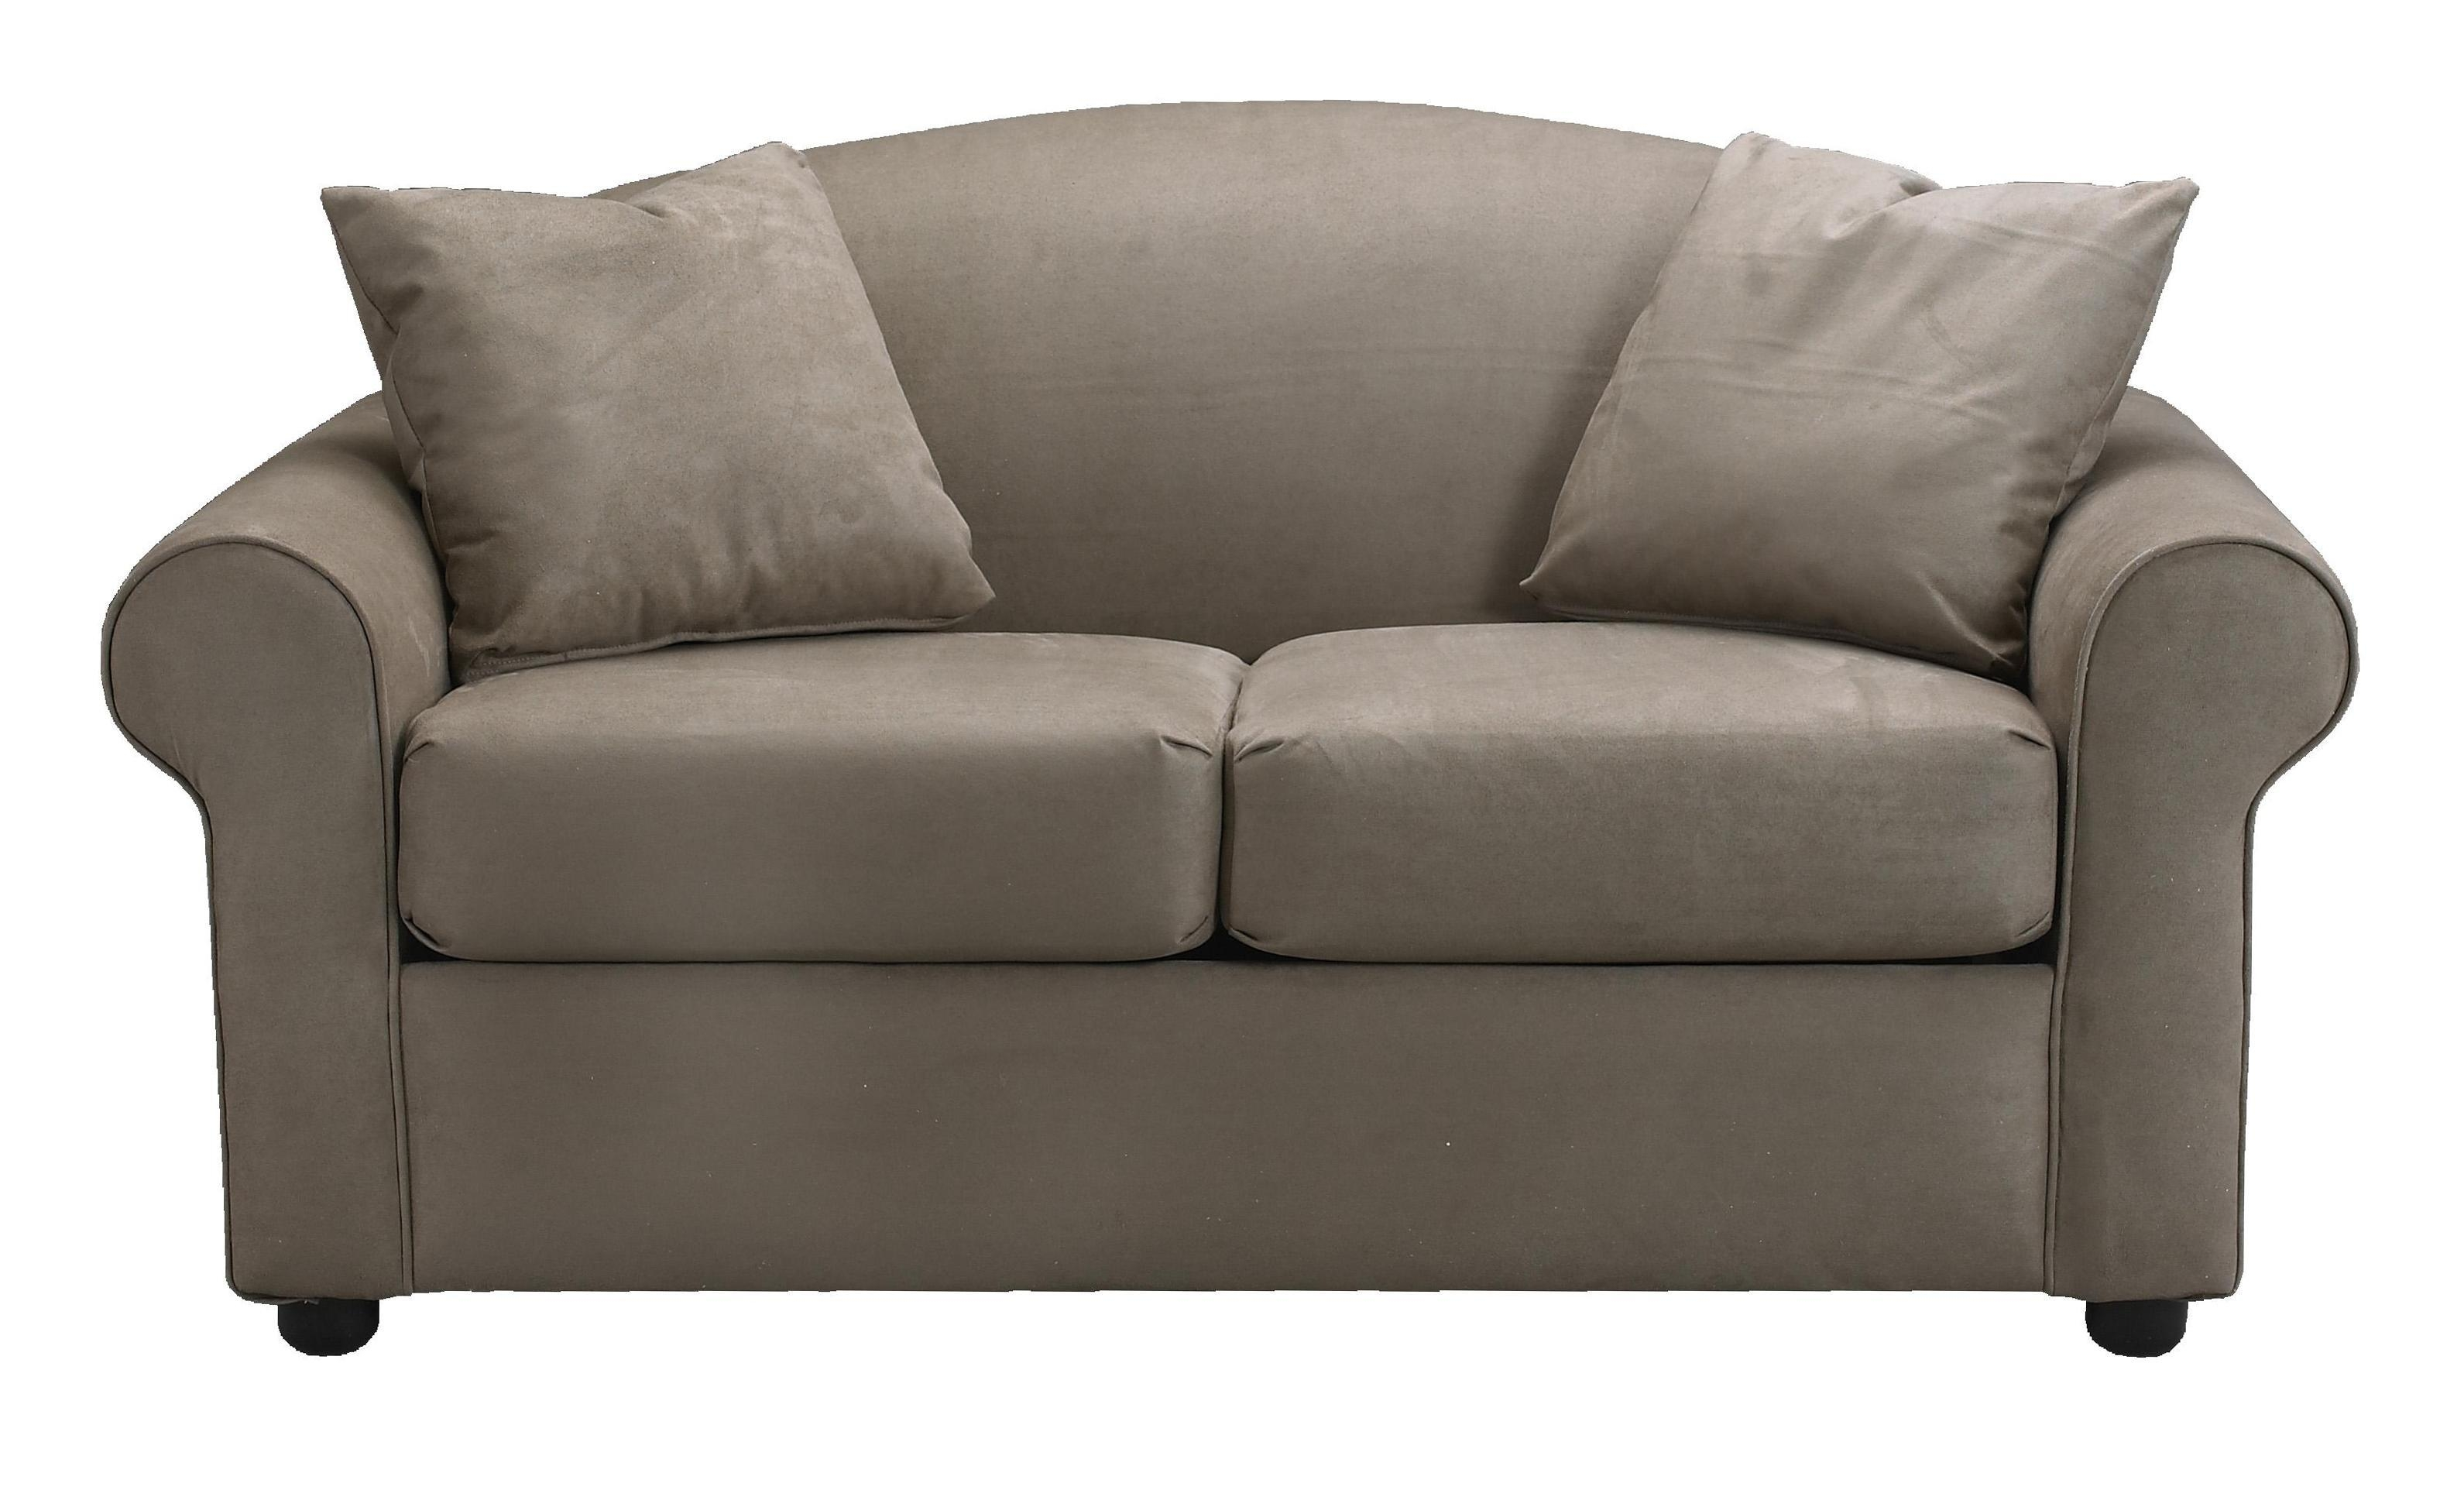 Sofa Couch Loveseat Sleeper | Fonky Pertaining To Denim Loveseats (View 14 of 20)